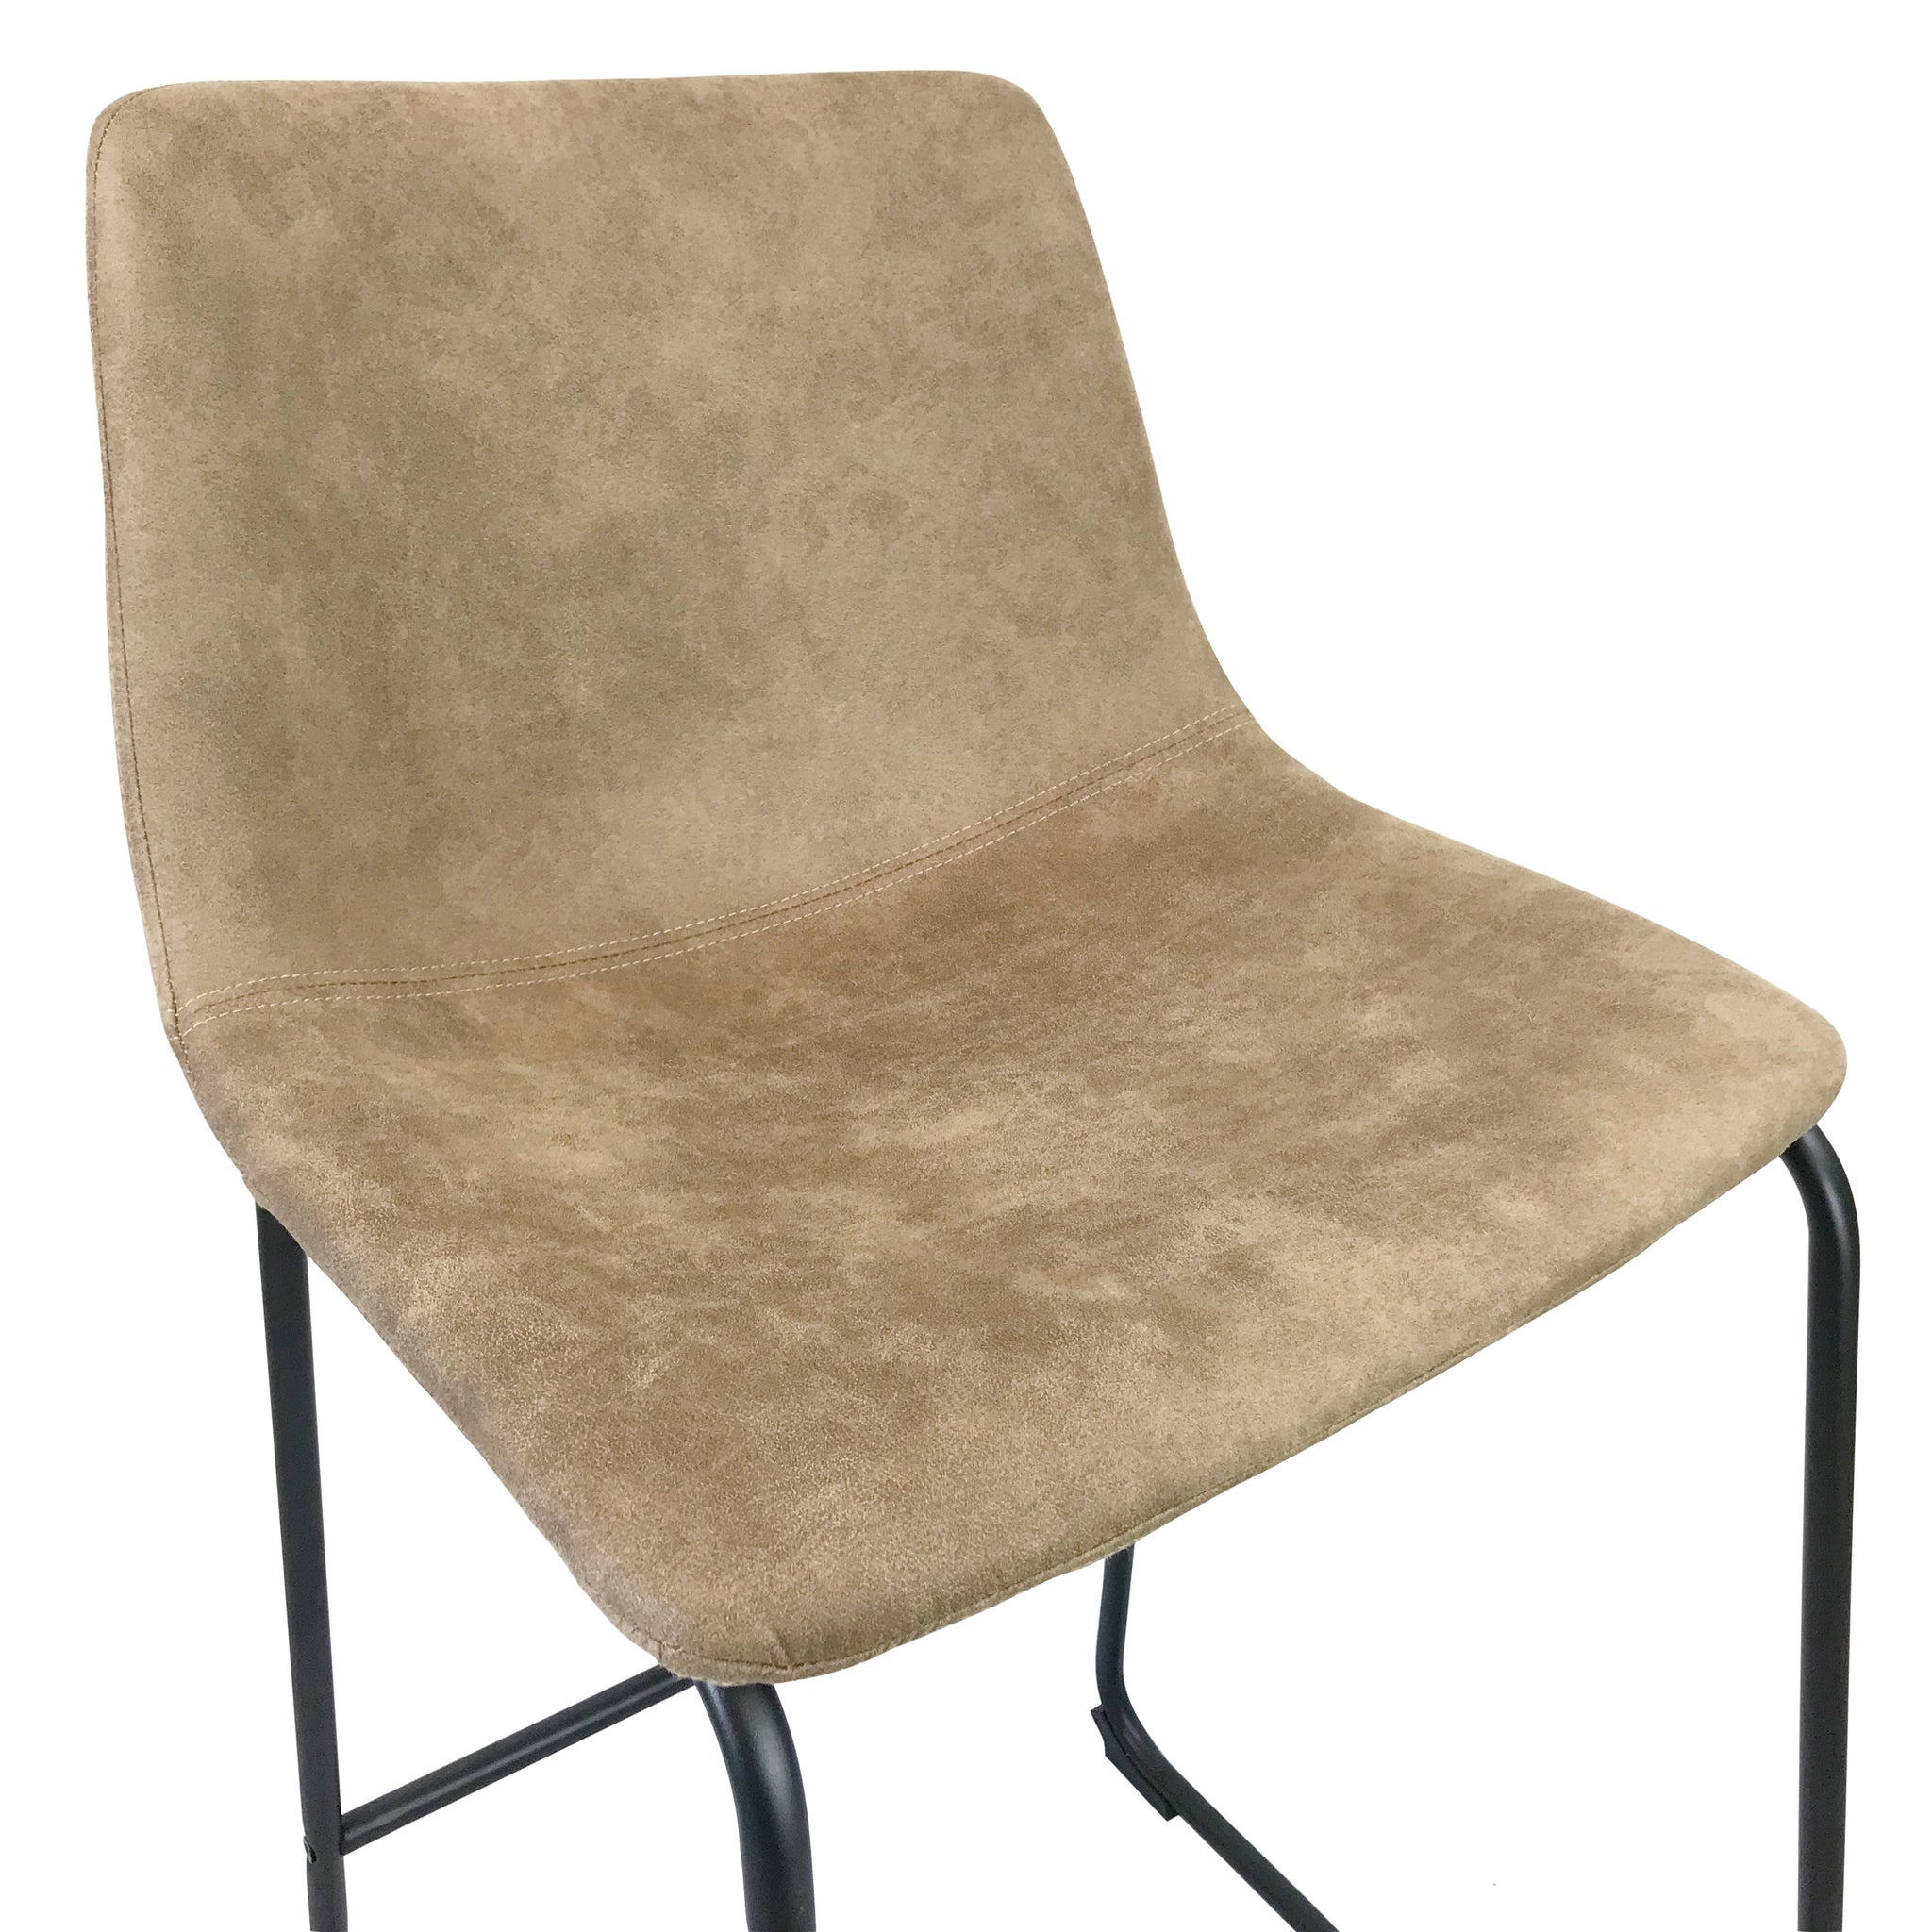 Awe Inspiring Chase Suede Bar Stool With Black Frame Tan Seat Gmtry Best Dining Table And Chair Ideas Images Gmtryco